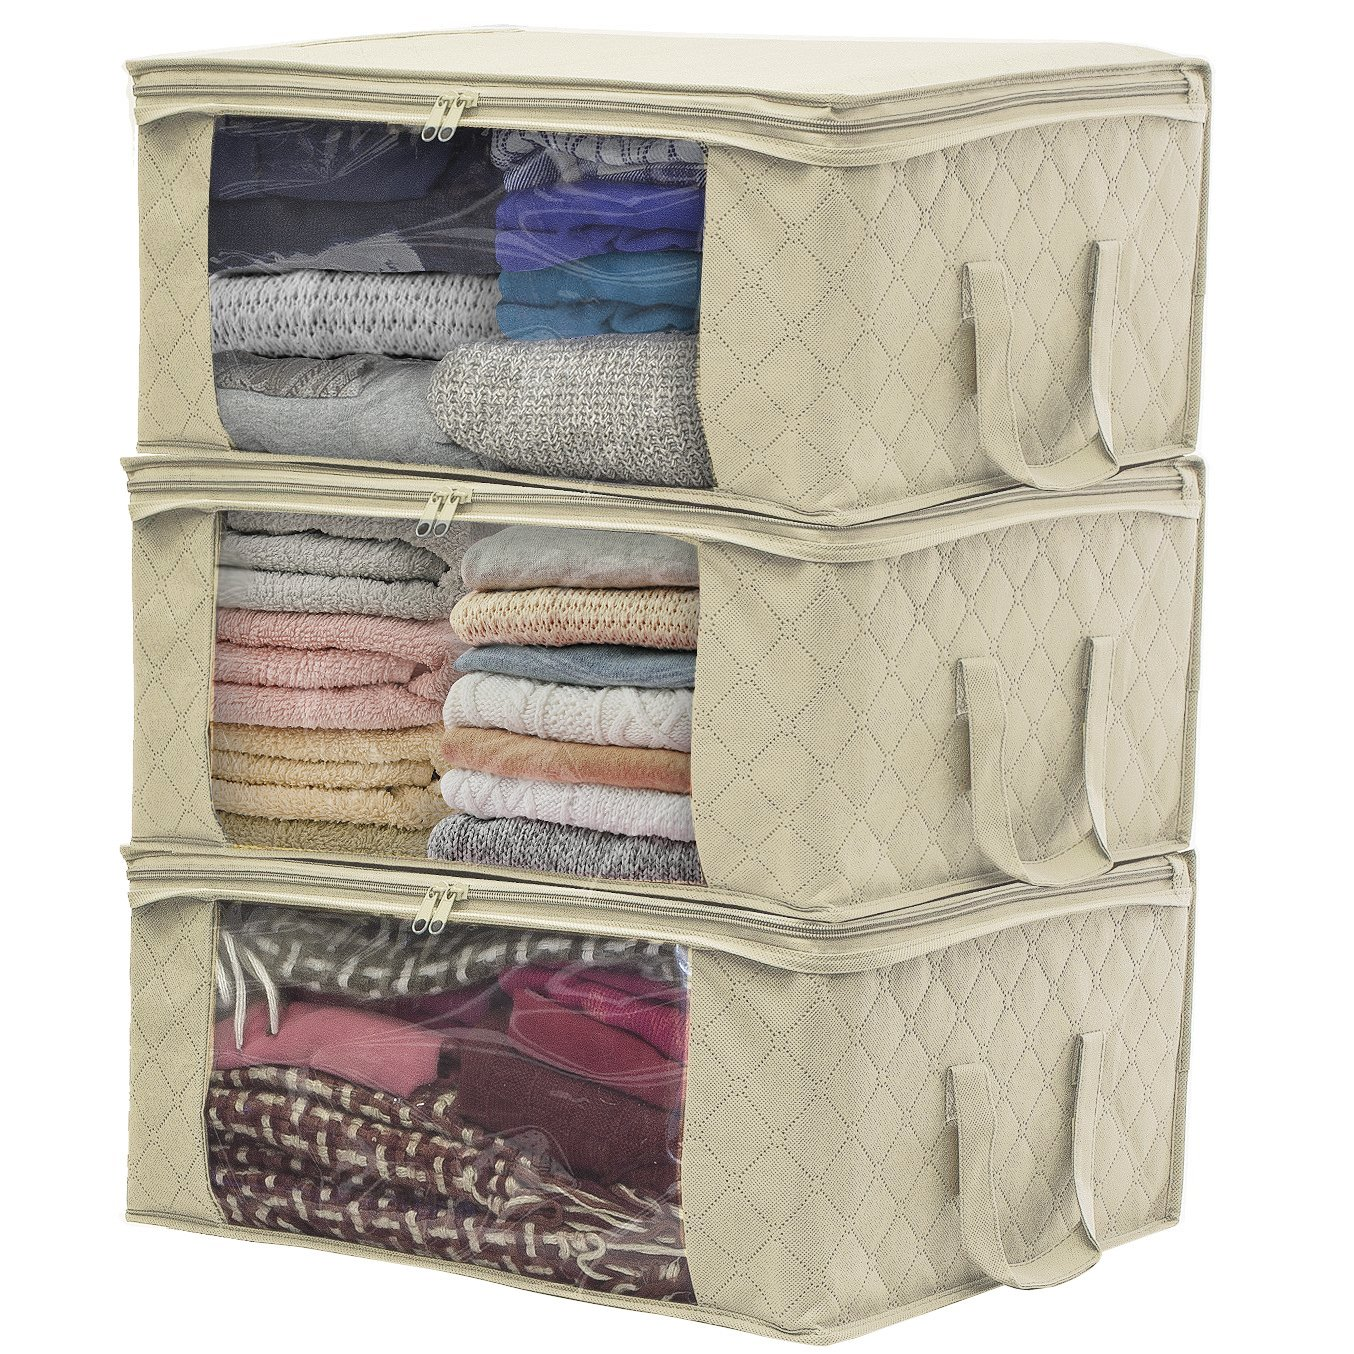 Sorbus Foldable Storage Bag Organizers, Large Clear Window & Carry Handles, for Clothes, Blankets, Closets, Bedrooms, and More (3 Pack, Beige), 1 Section